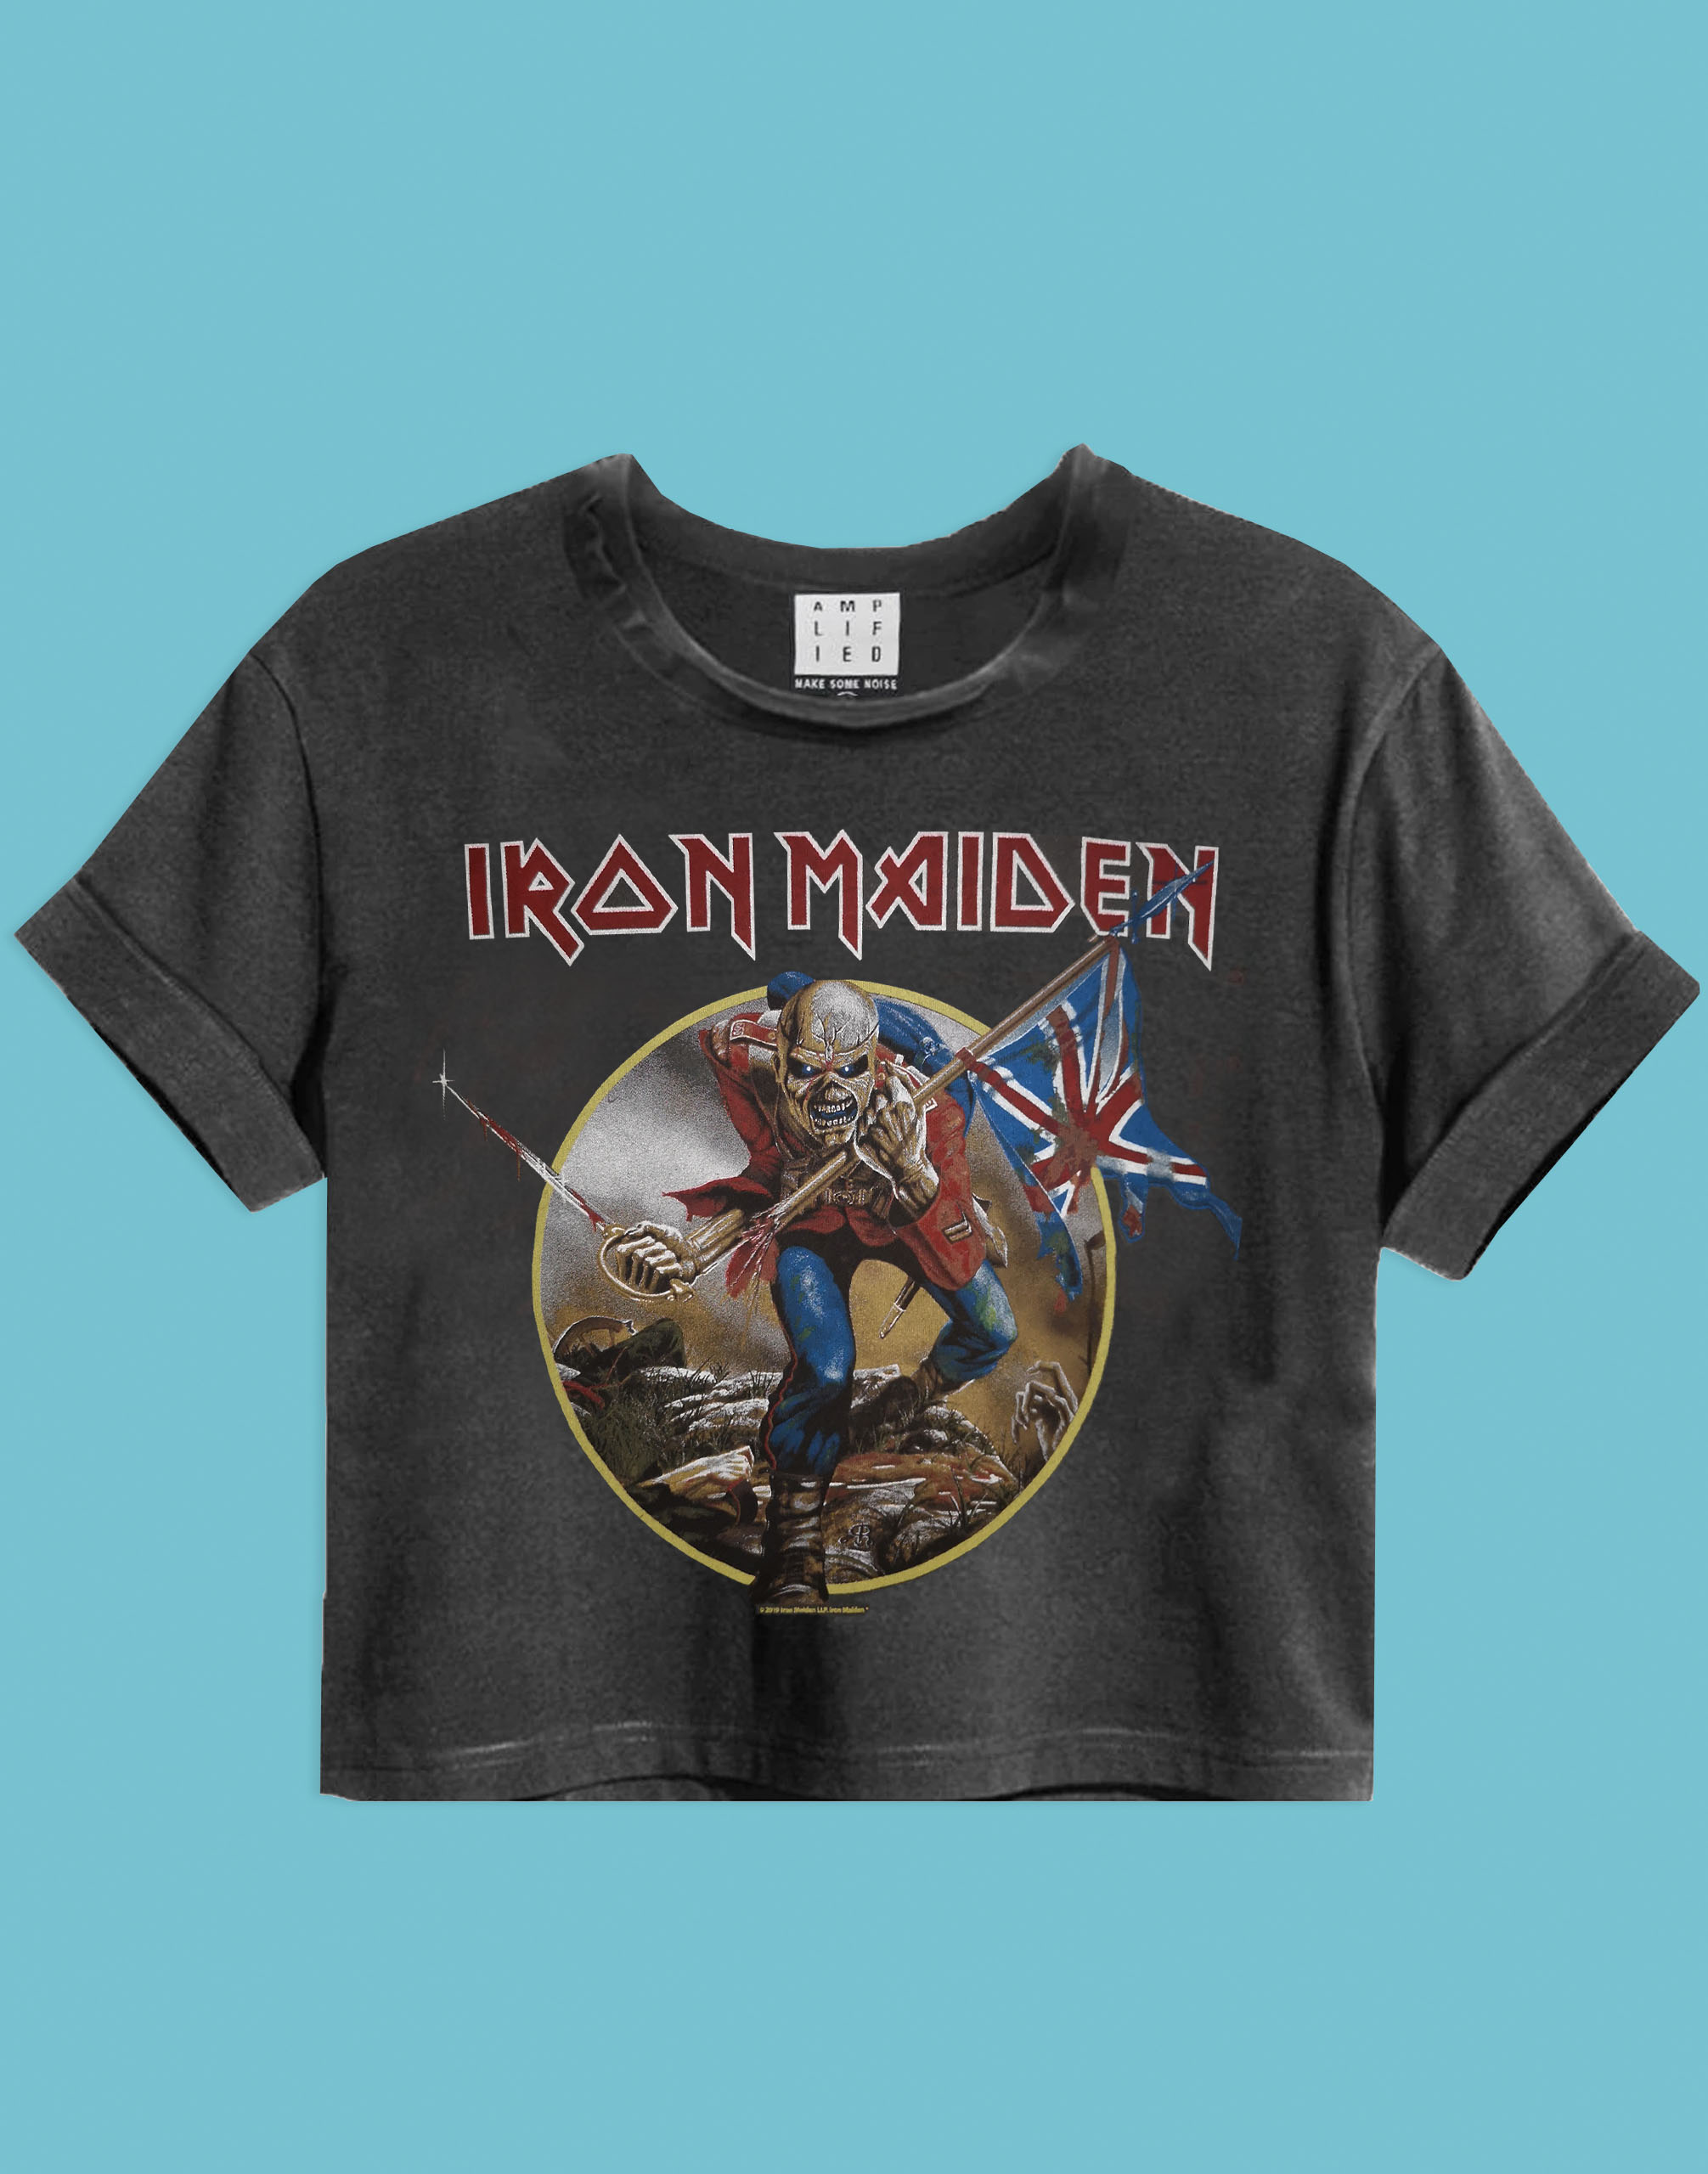 Amplified Iron Maiden Trooper Charcoal Ladies Women/'s Cropped Band T-Shirt